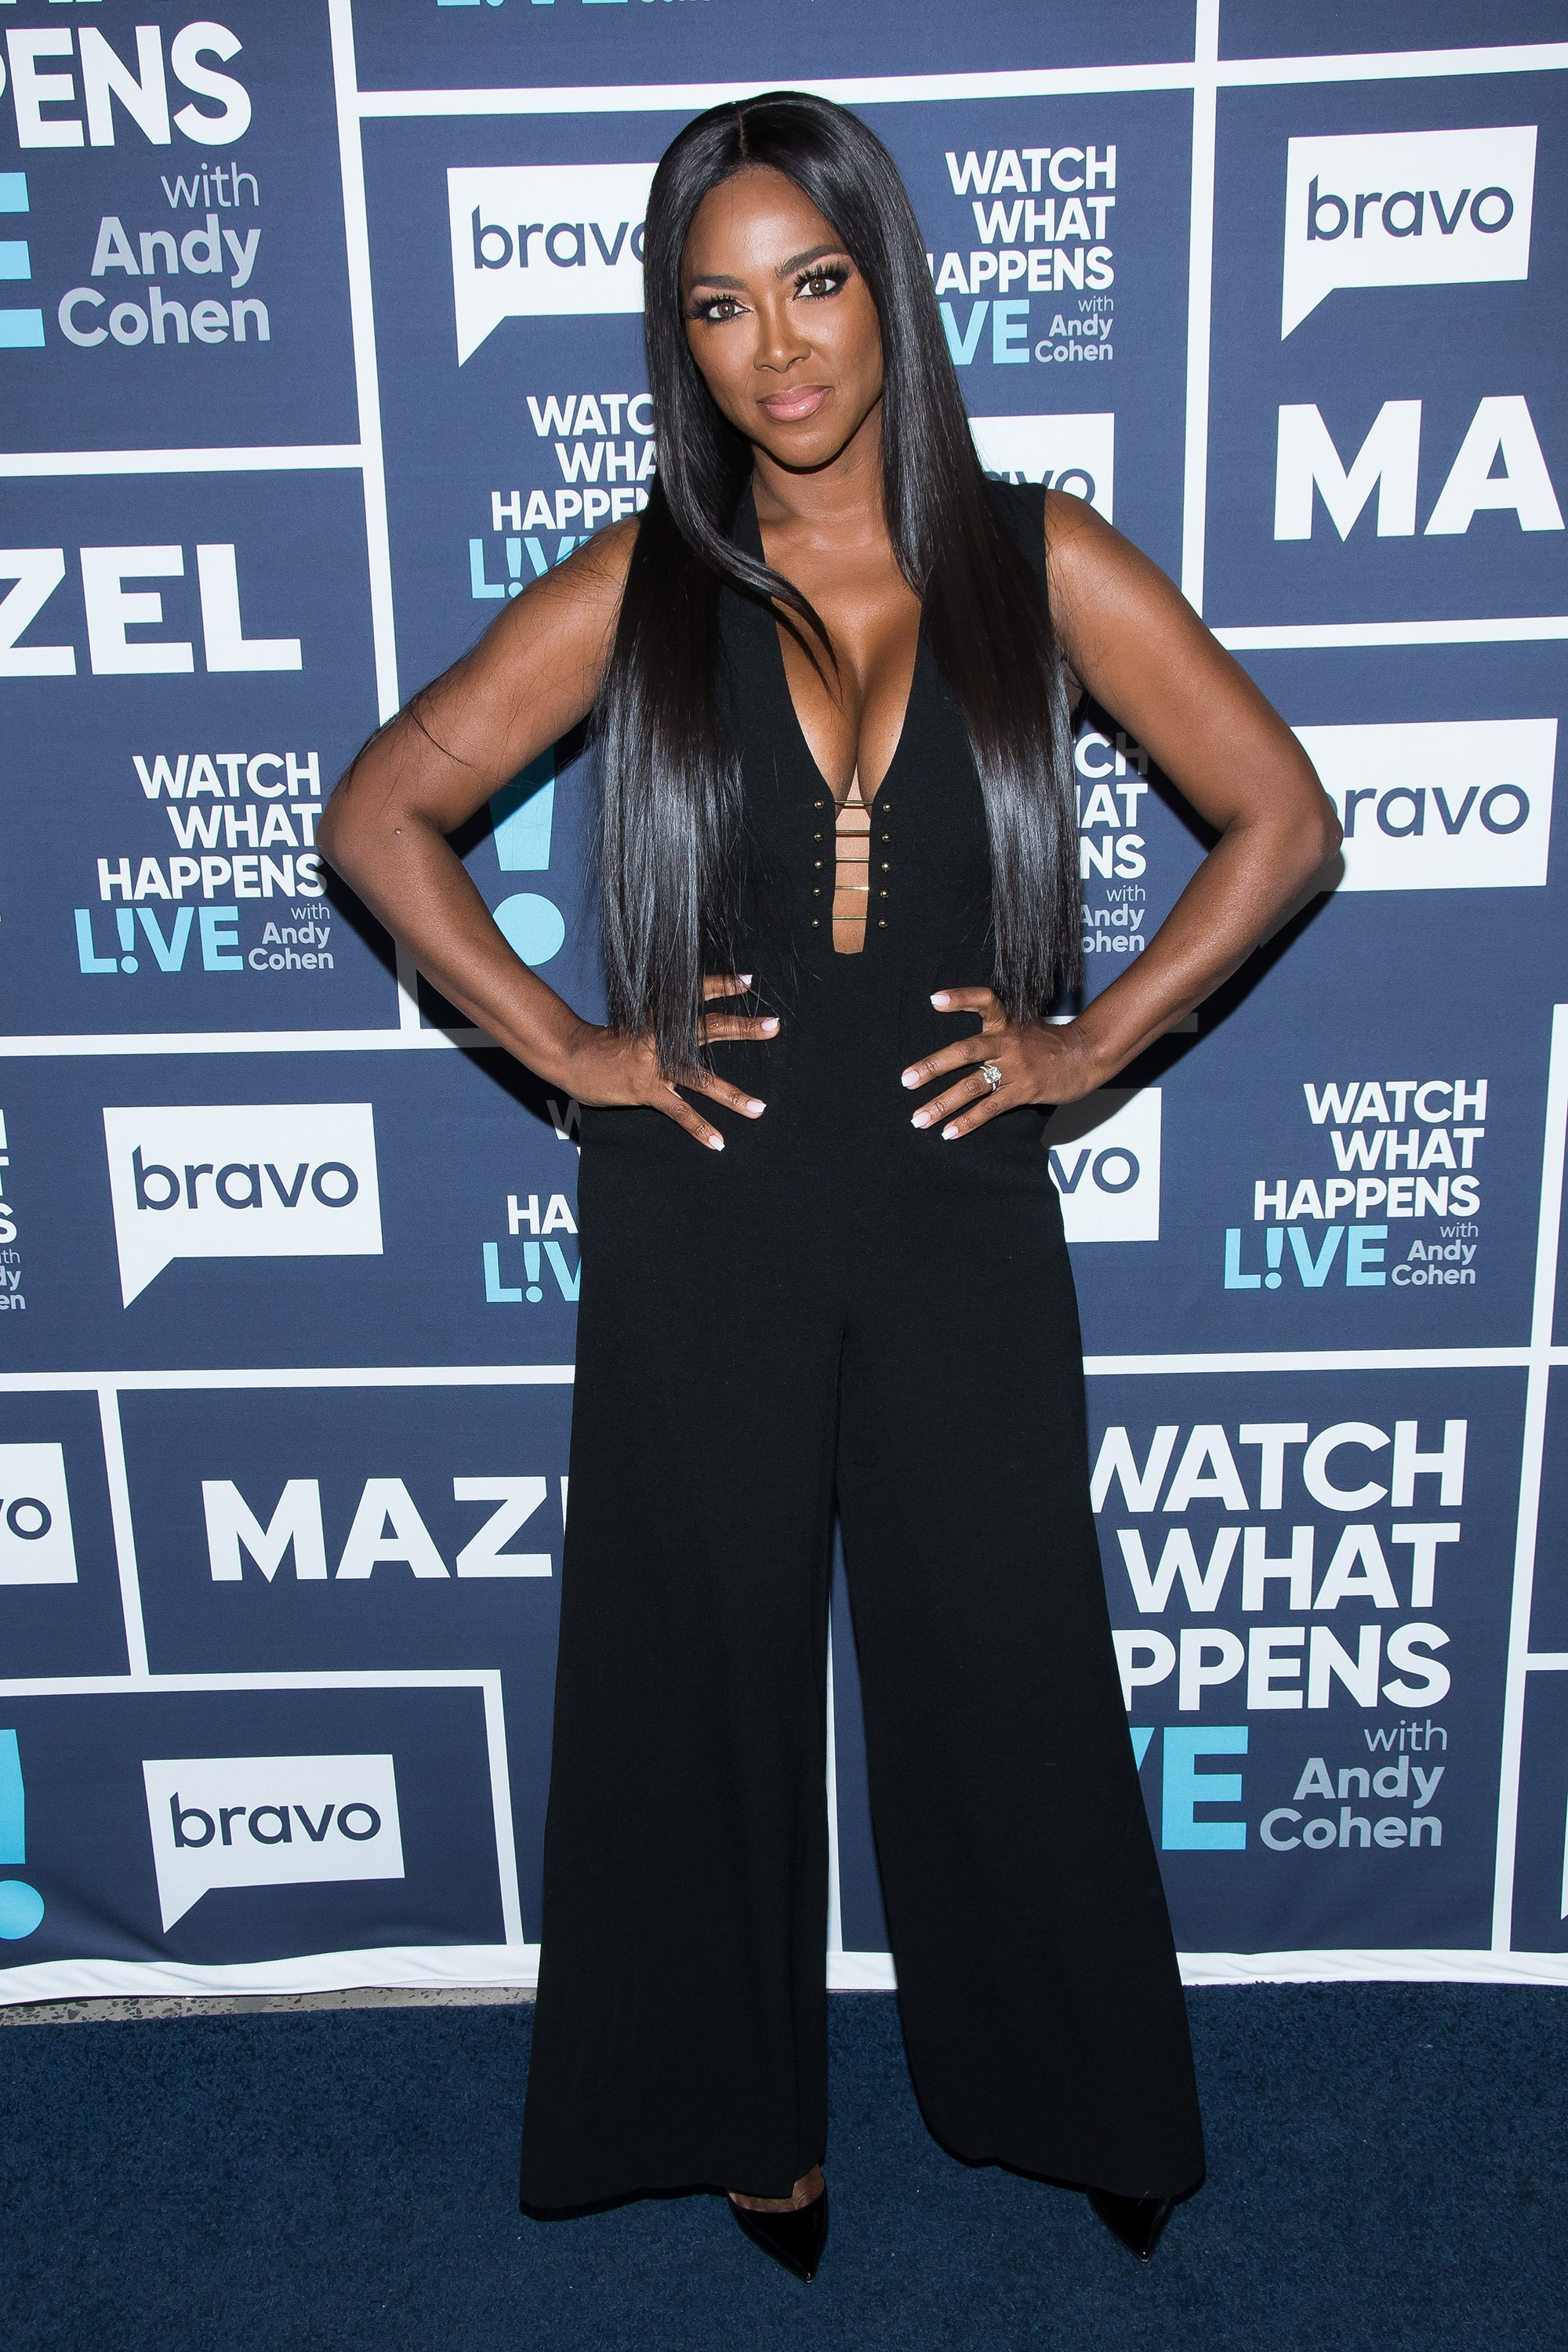 Kenya Moore on the Red Carpet of Watch What Happens Live With Andy Cohen - Season 14| Photo: Getty Images